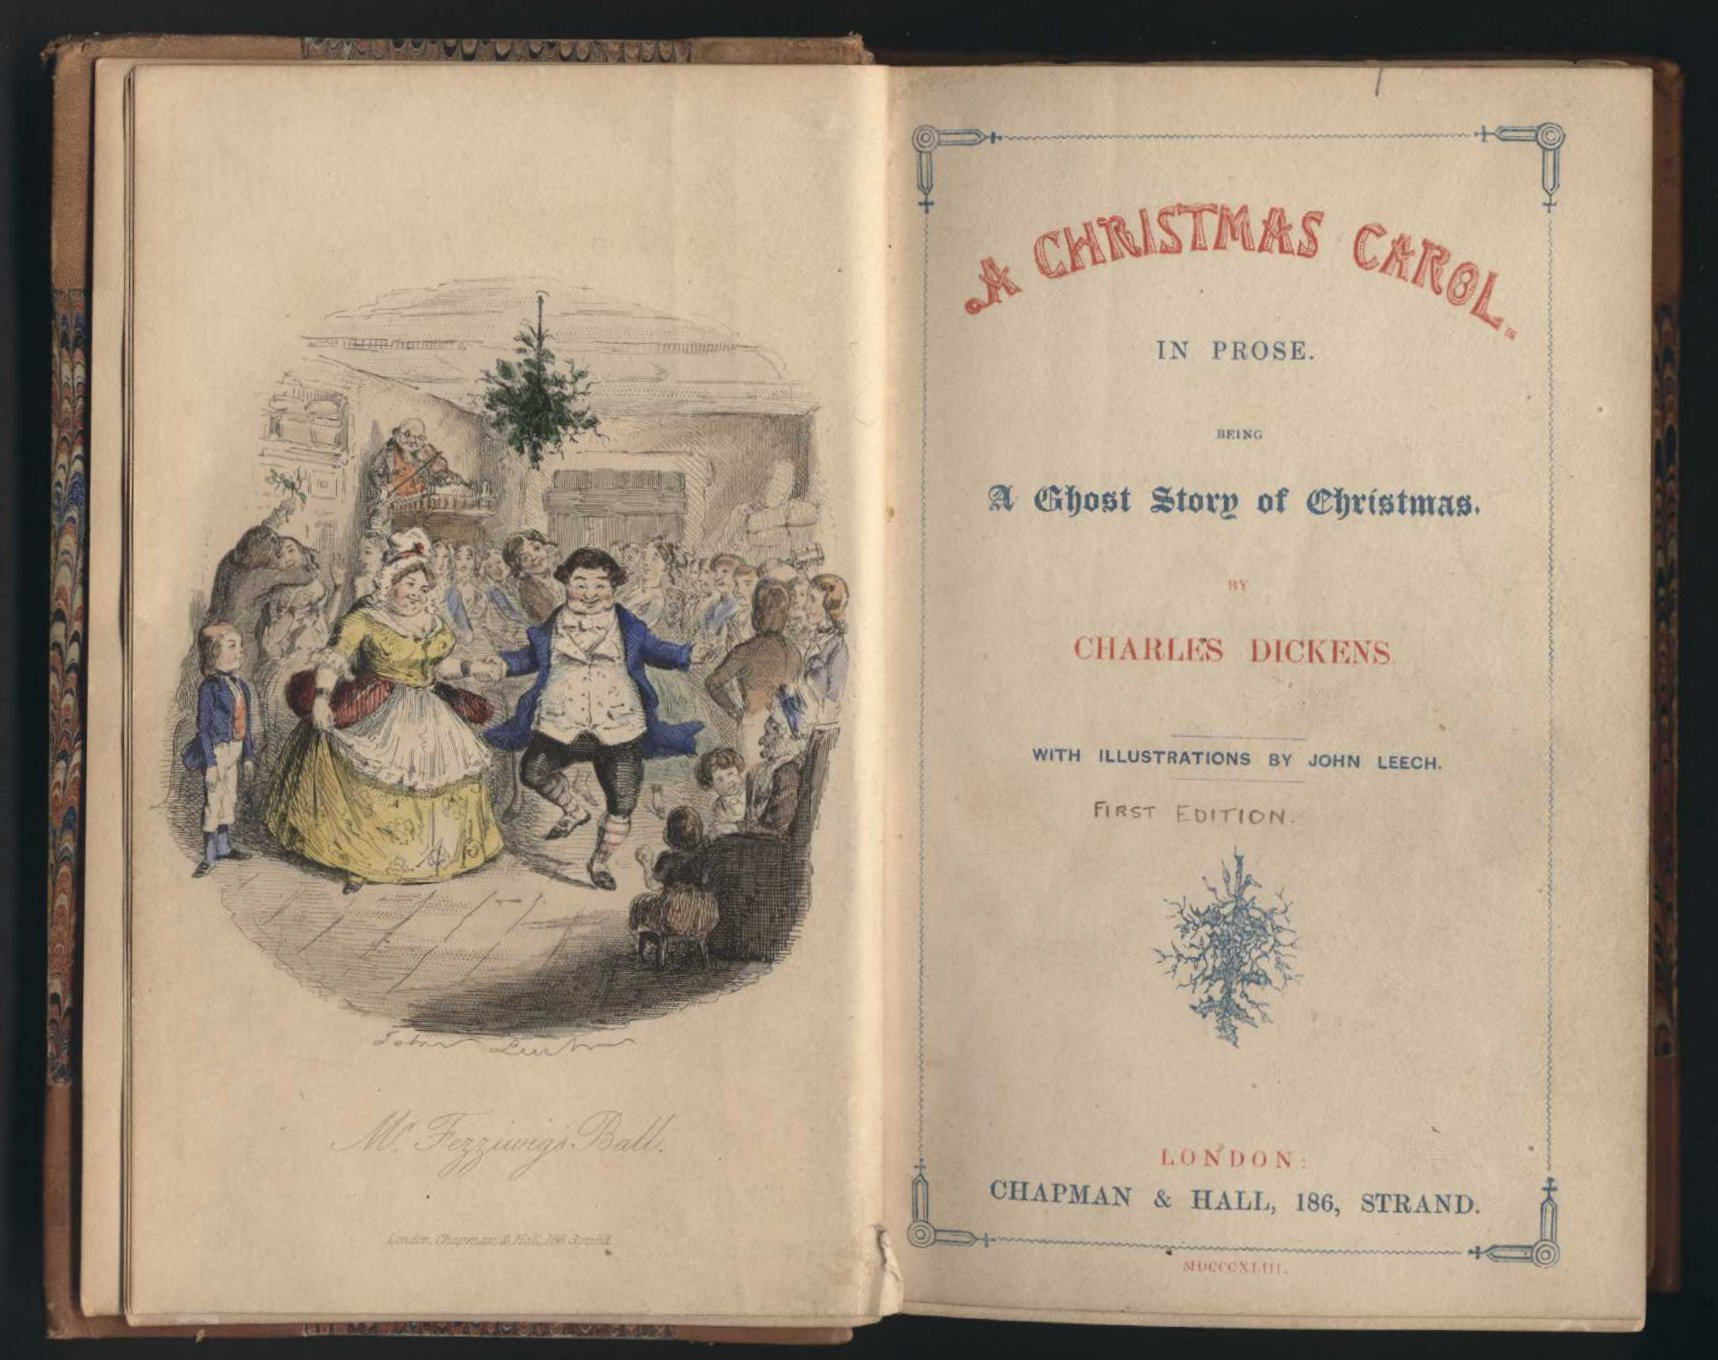 Charles Dickens. A Christmas carol in prose: being a ghost story of Christmas. London: Chapman & Hall, 1843.